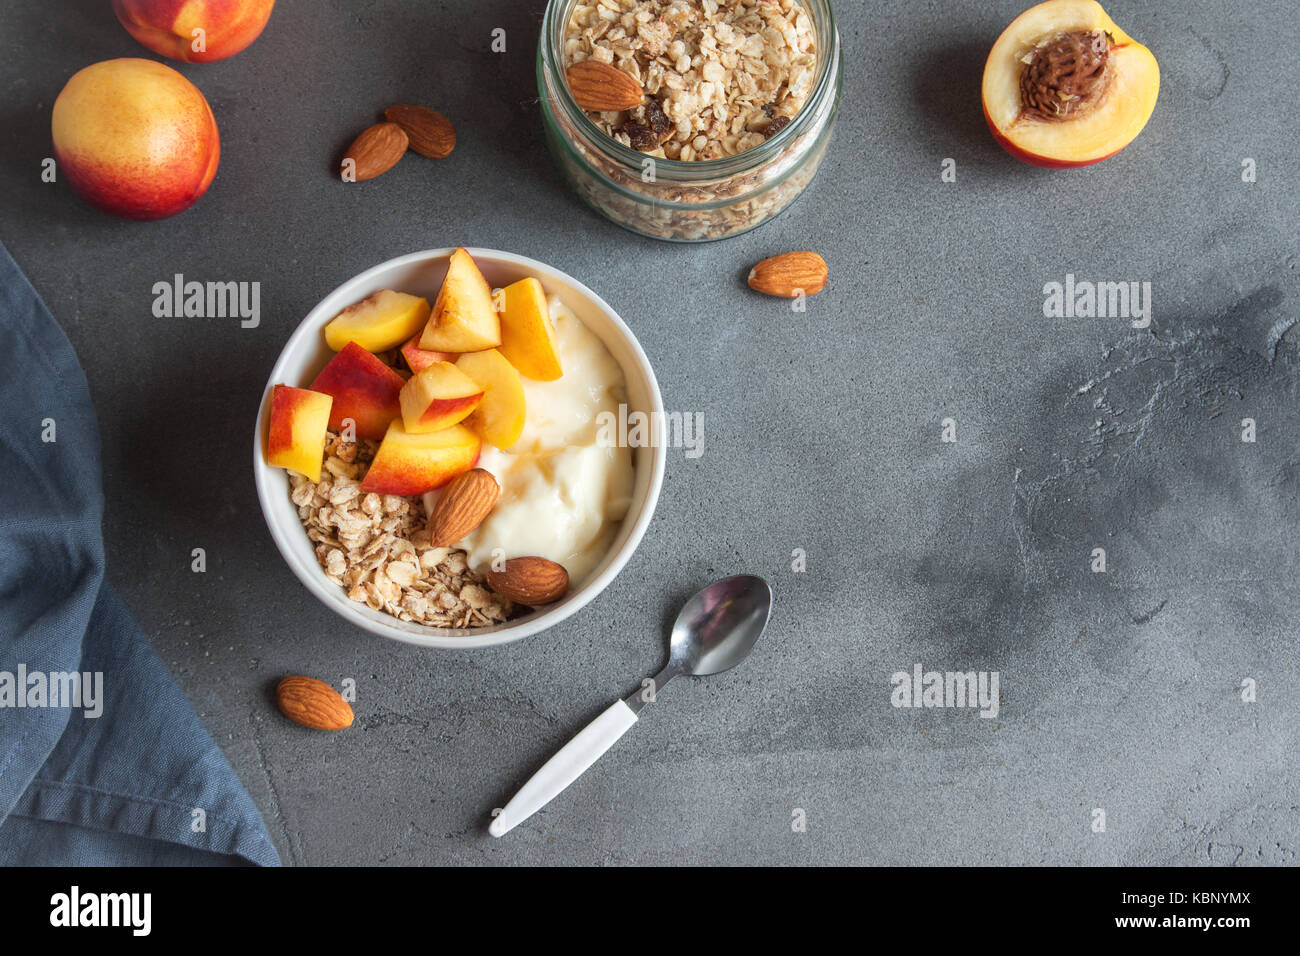 Homemade oatmeal granola with yogurt and peaches in bowl for healthy breakfast. Cereal and fruit breakfast bowl - Stock Image